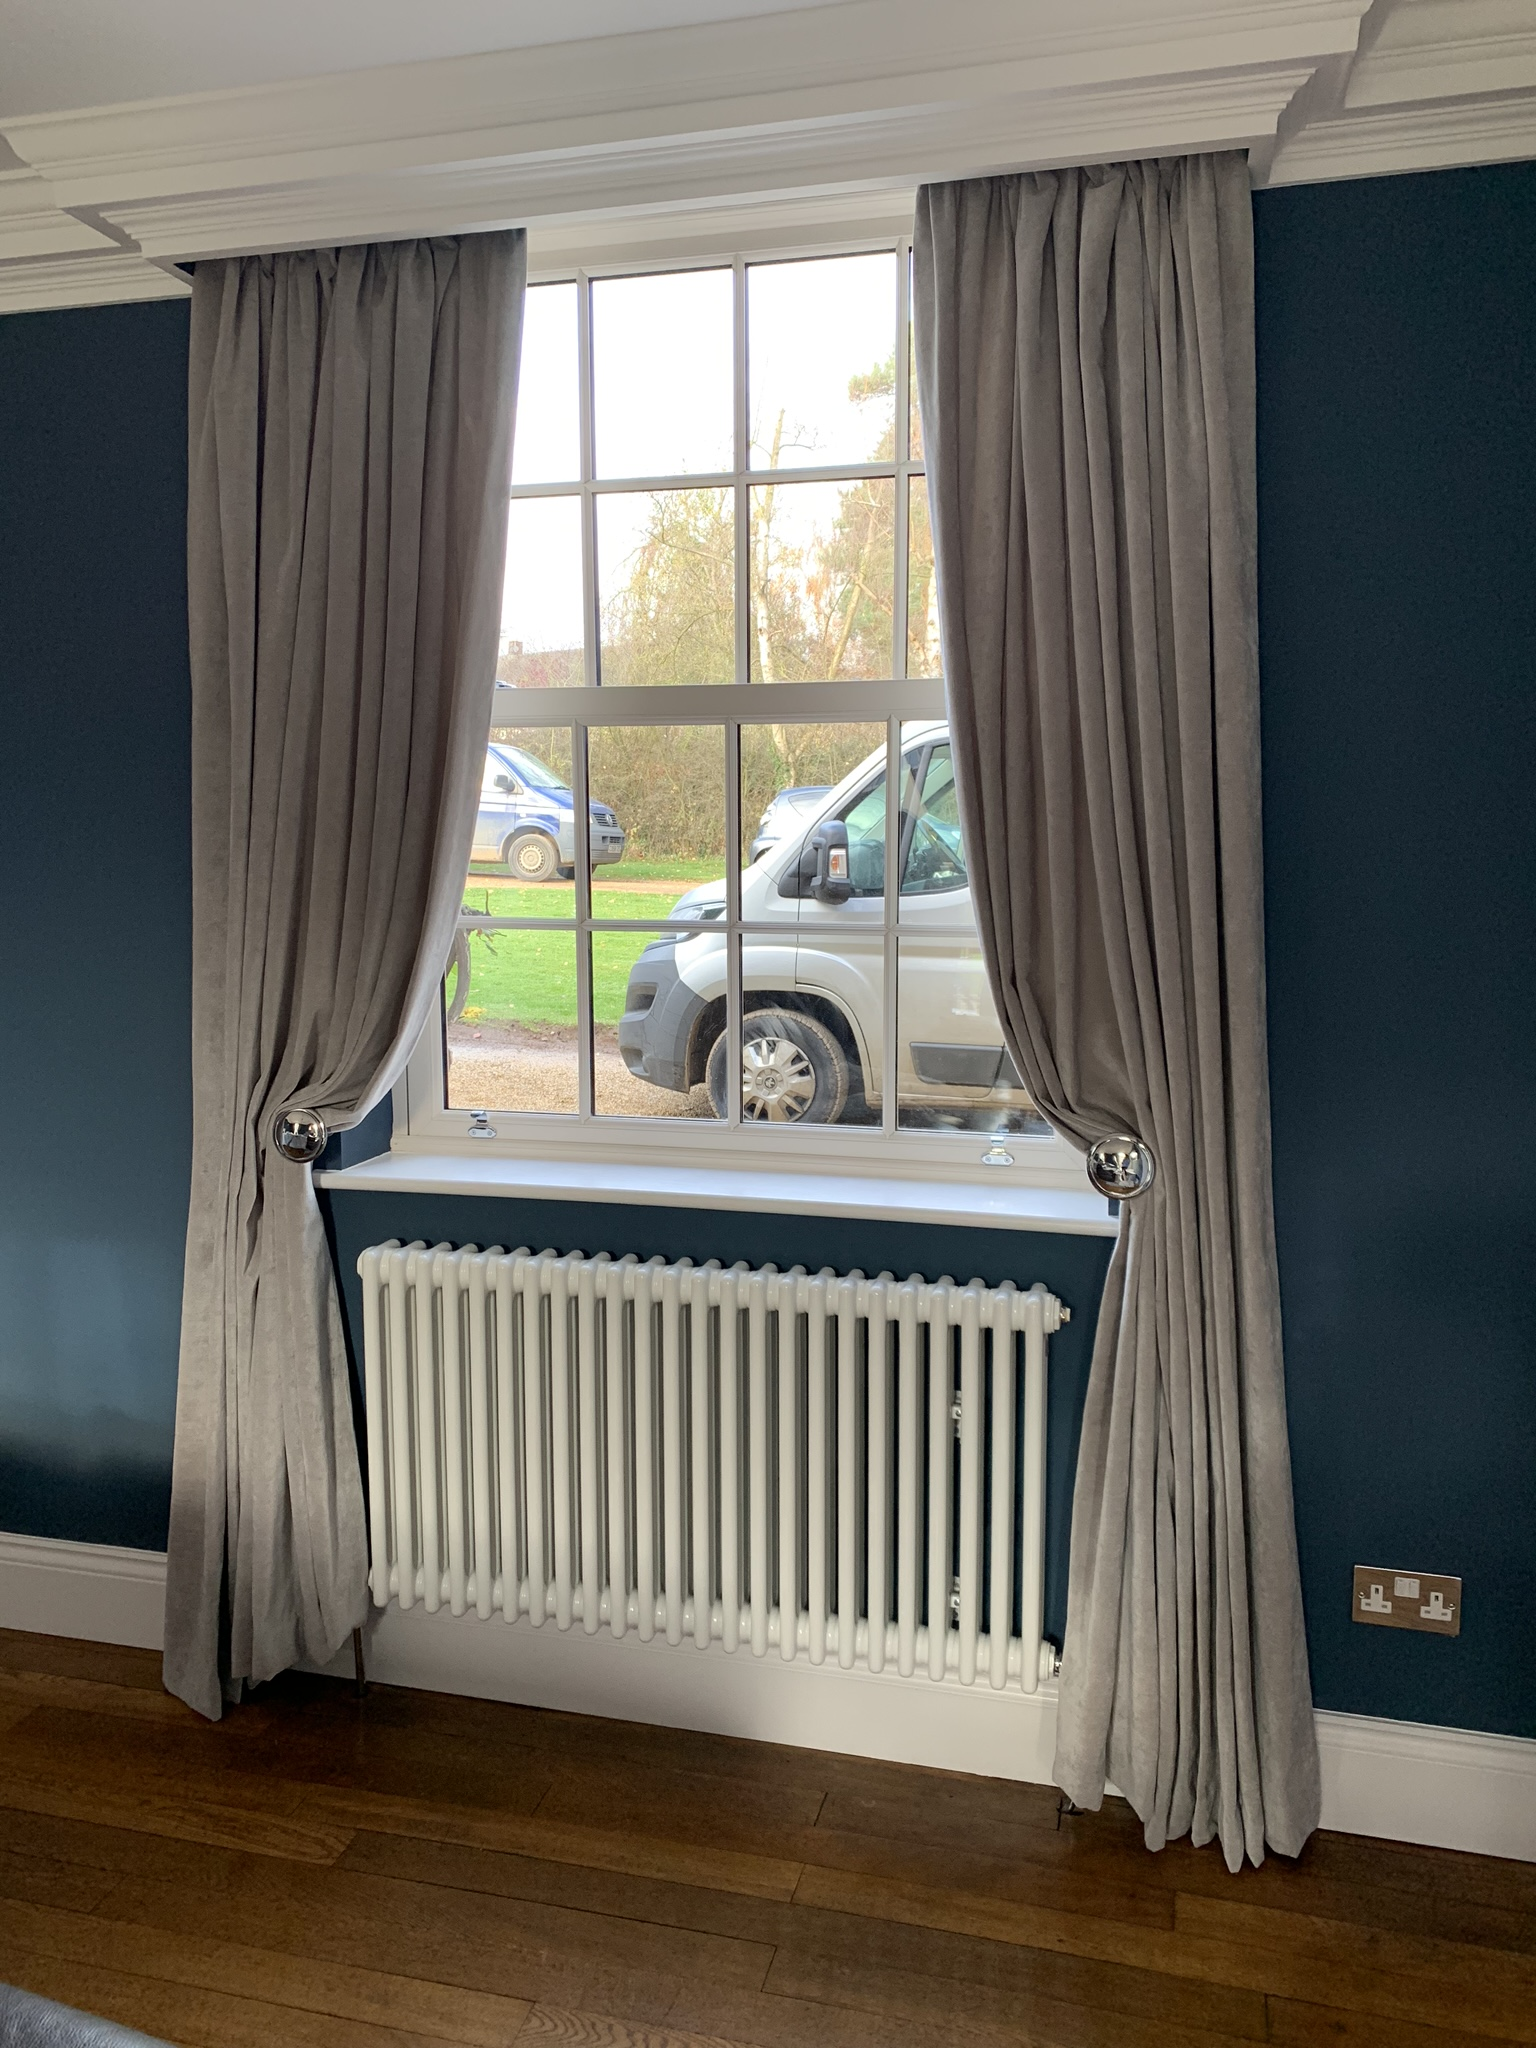 Curtain over Radiator